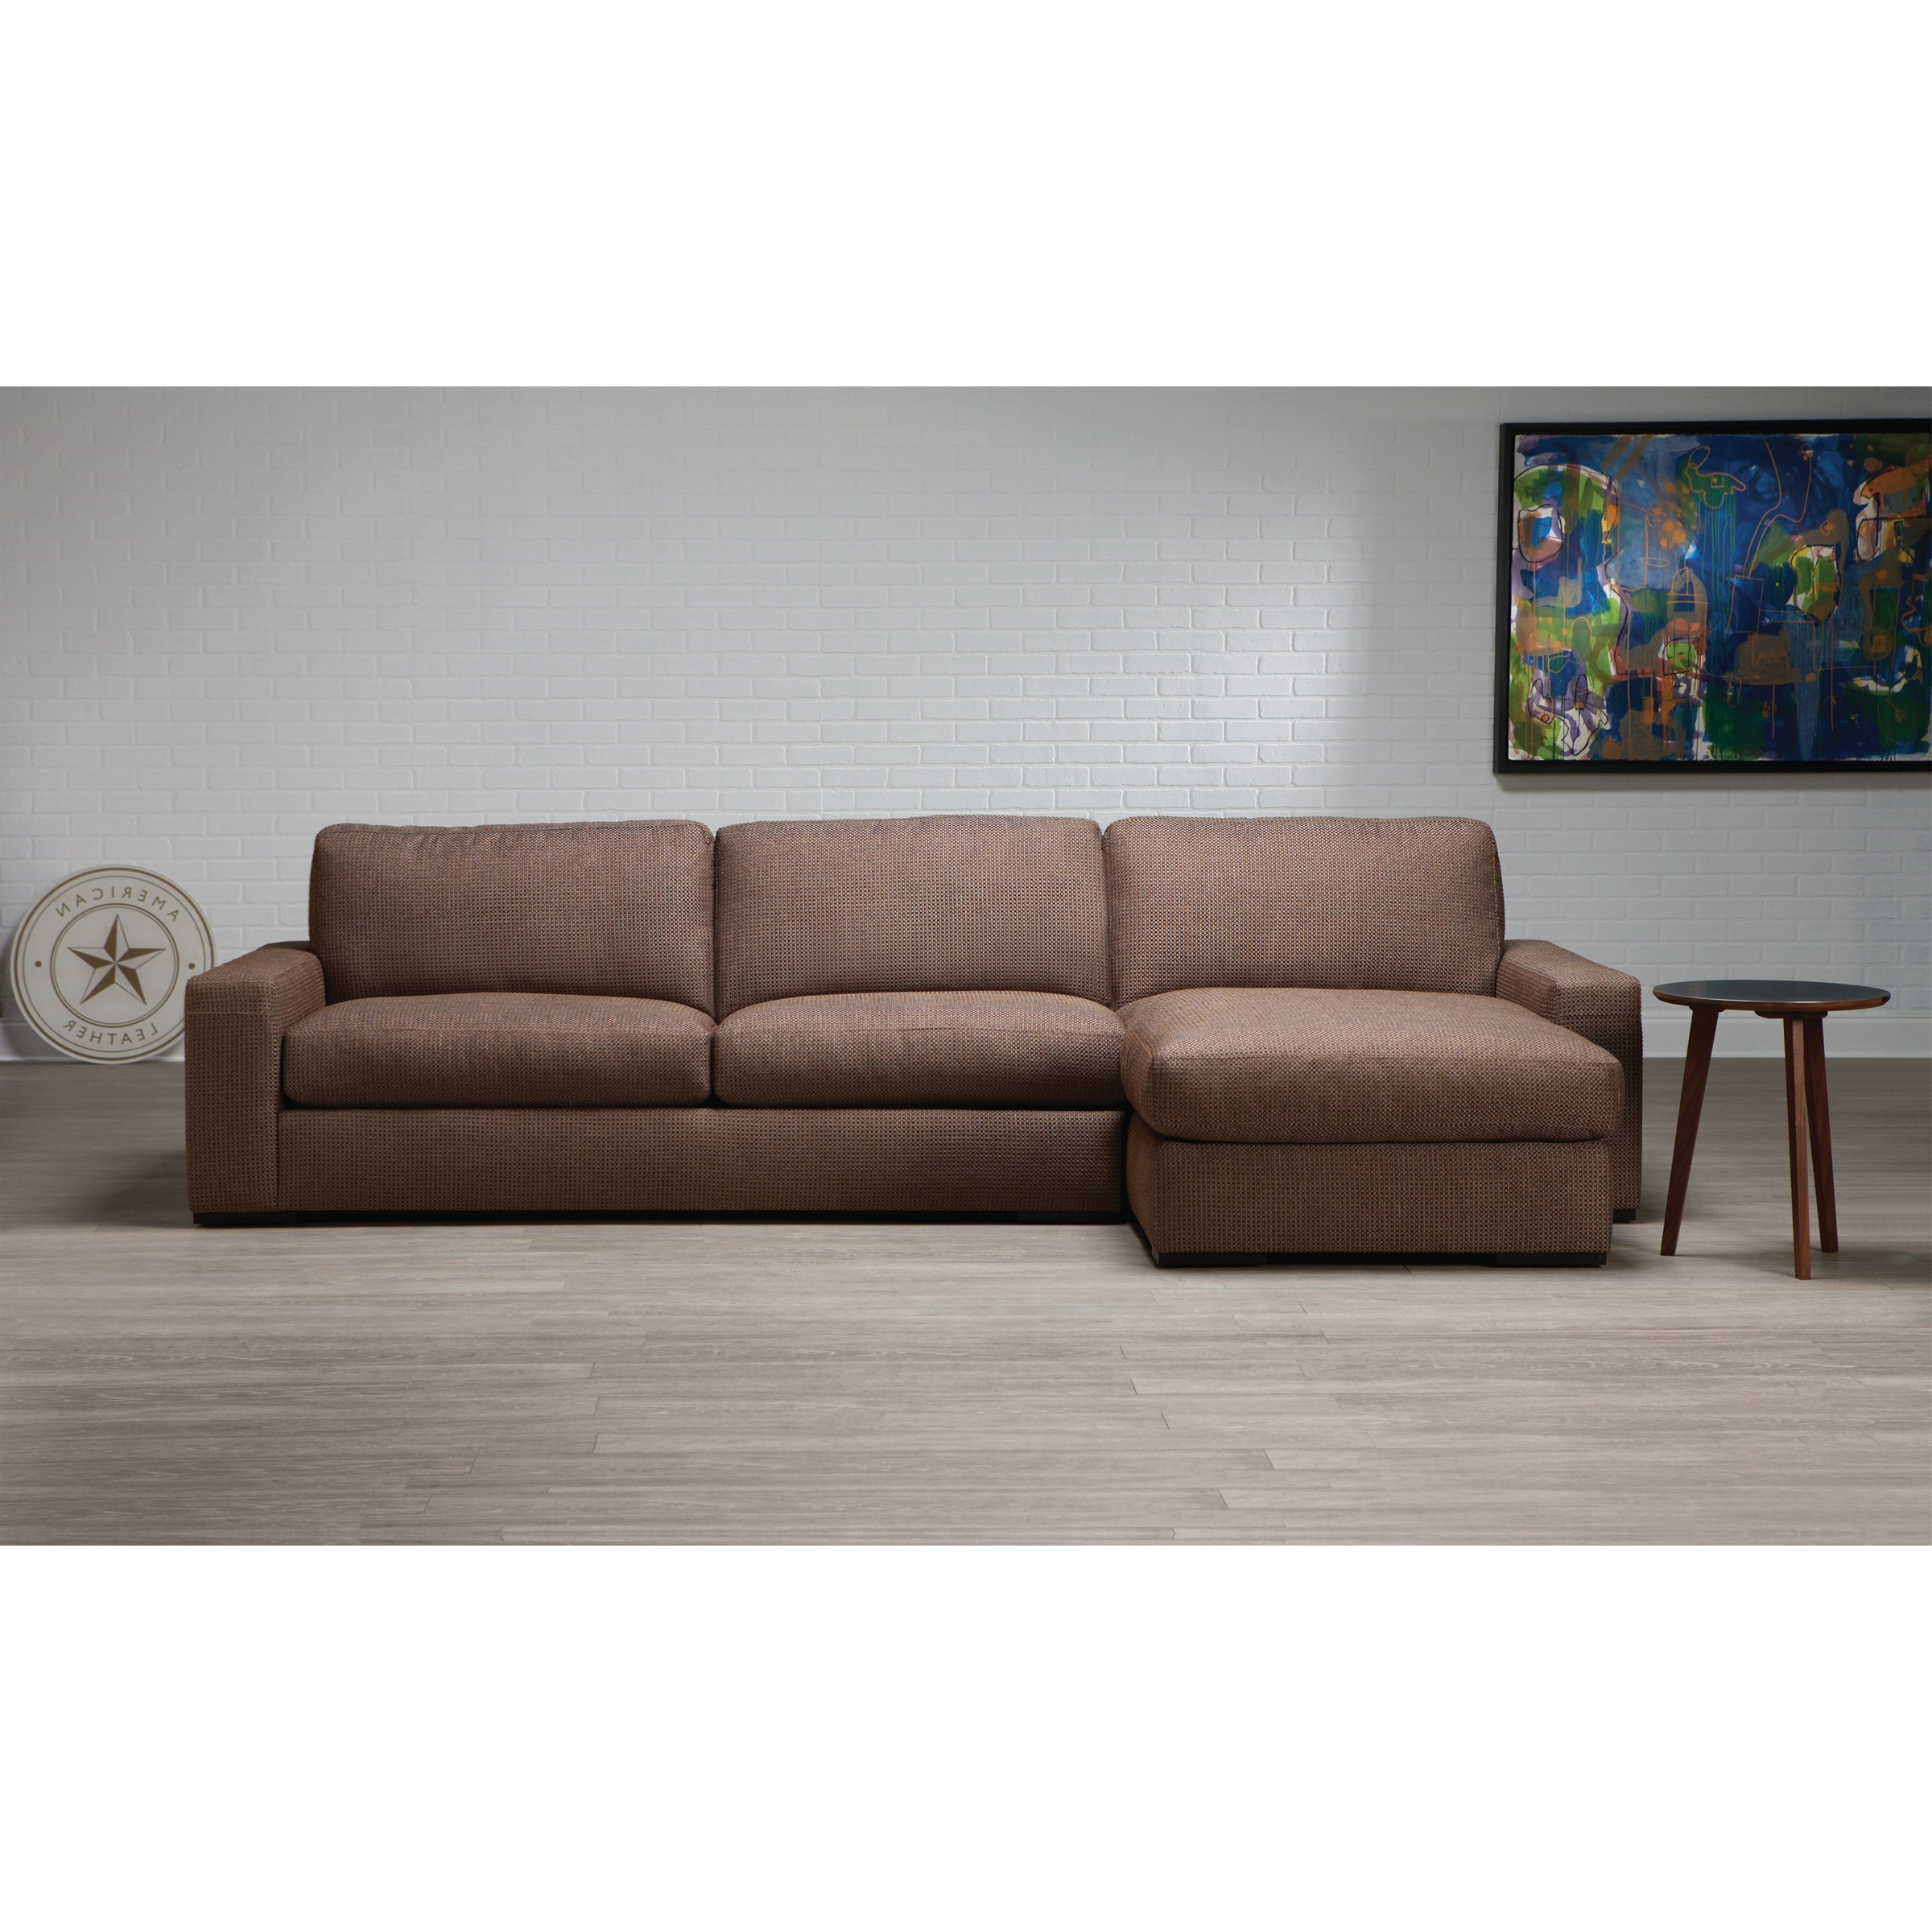 2pc Connel Modern Chaise Sectional Sofas Black In Recent American Leather Westchester Contemporary 2 Piece (View 11 of 20)